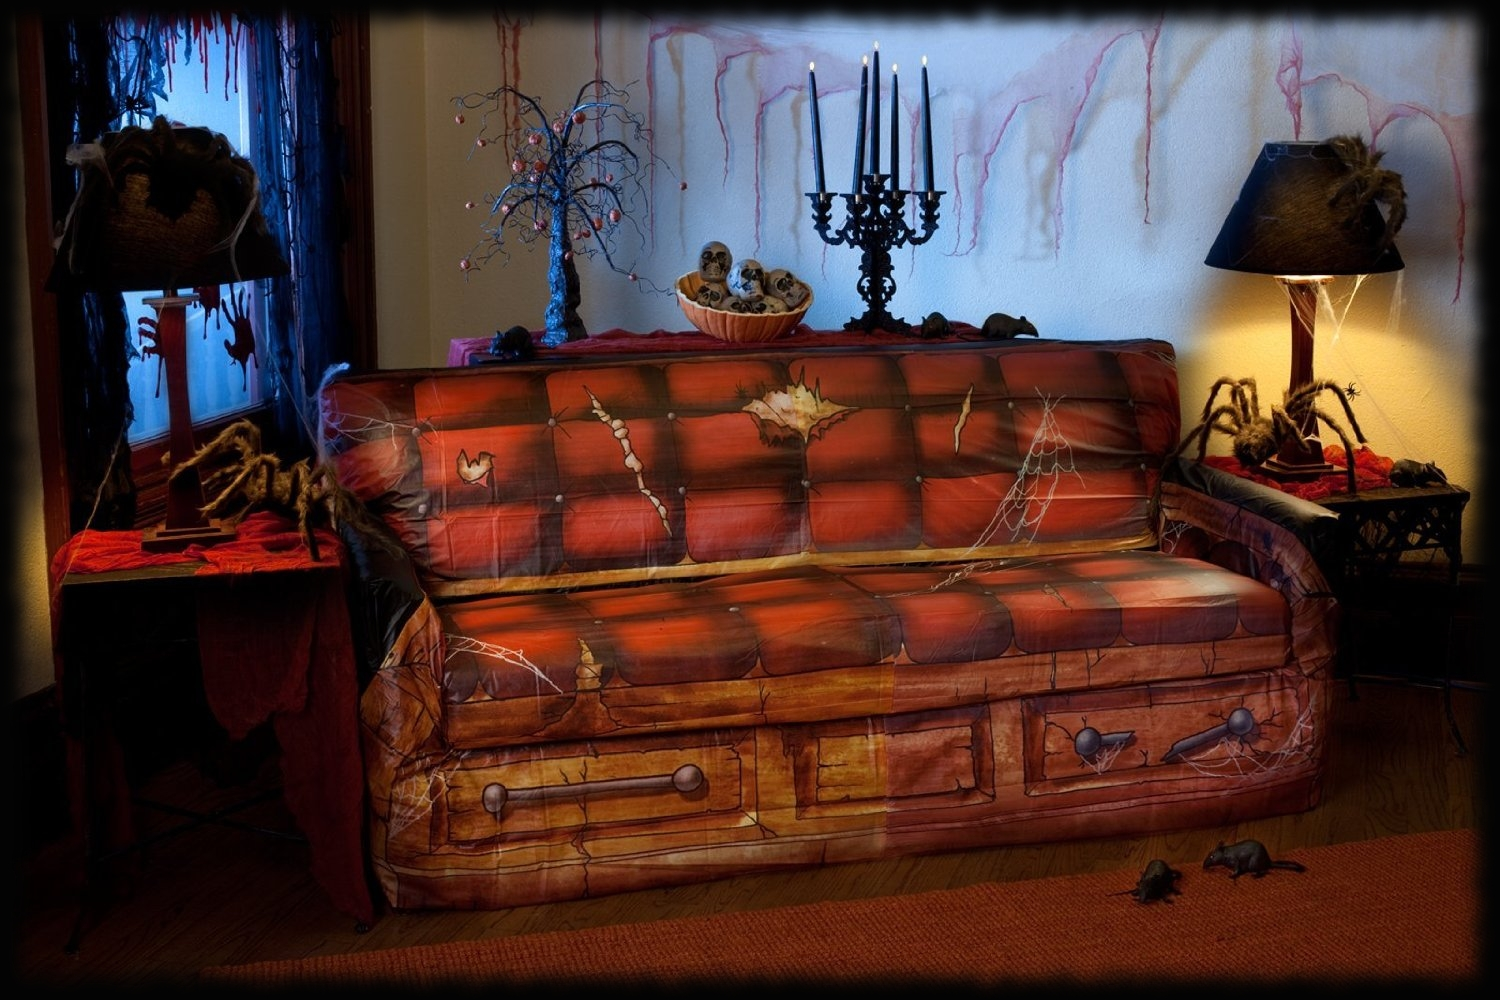 Sofa Couch Cover Haunted House Decorations For Sale ...